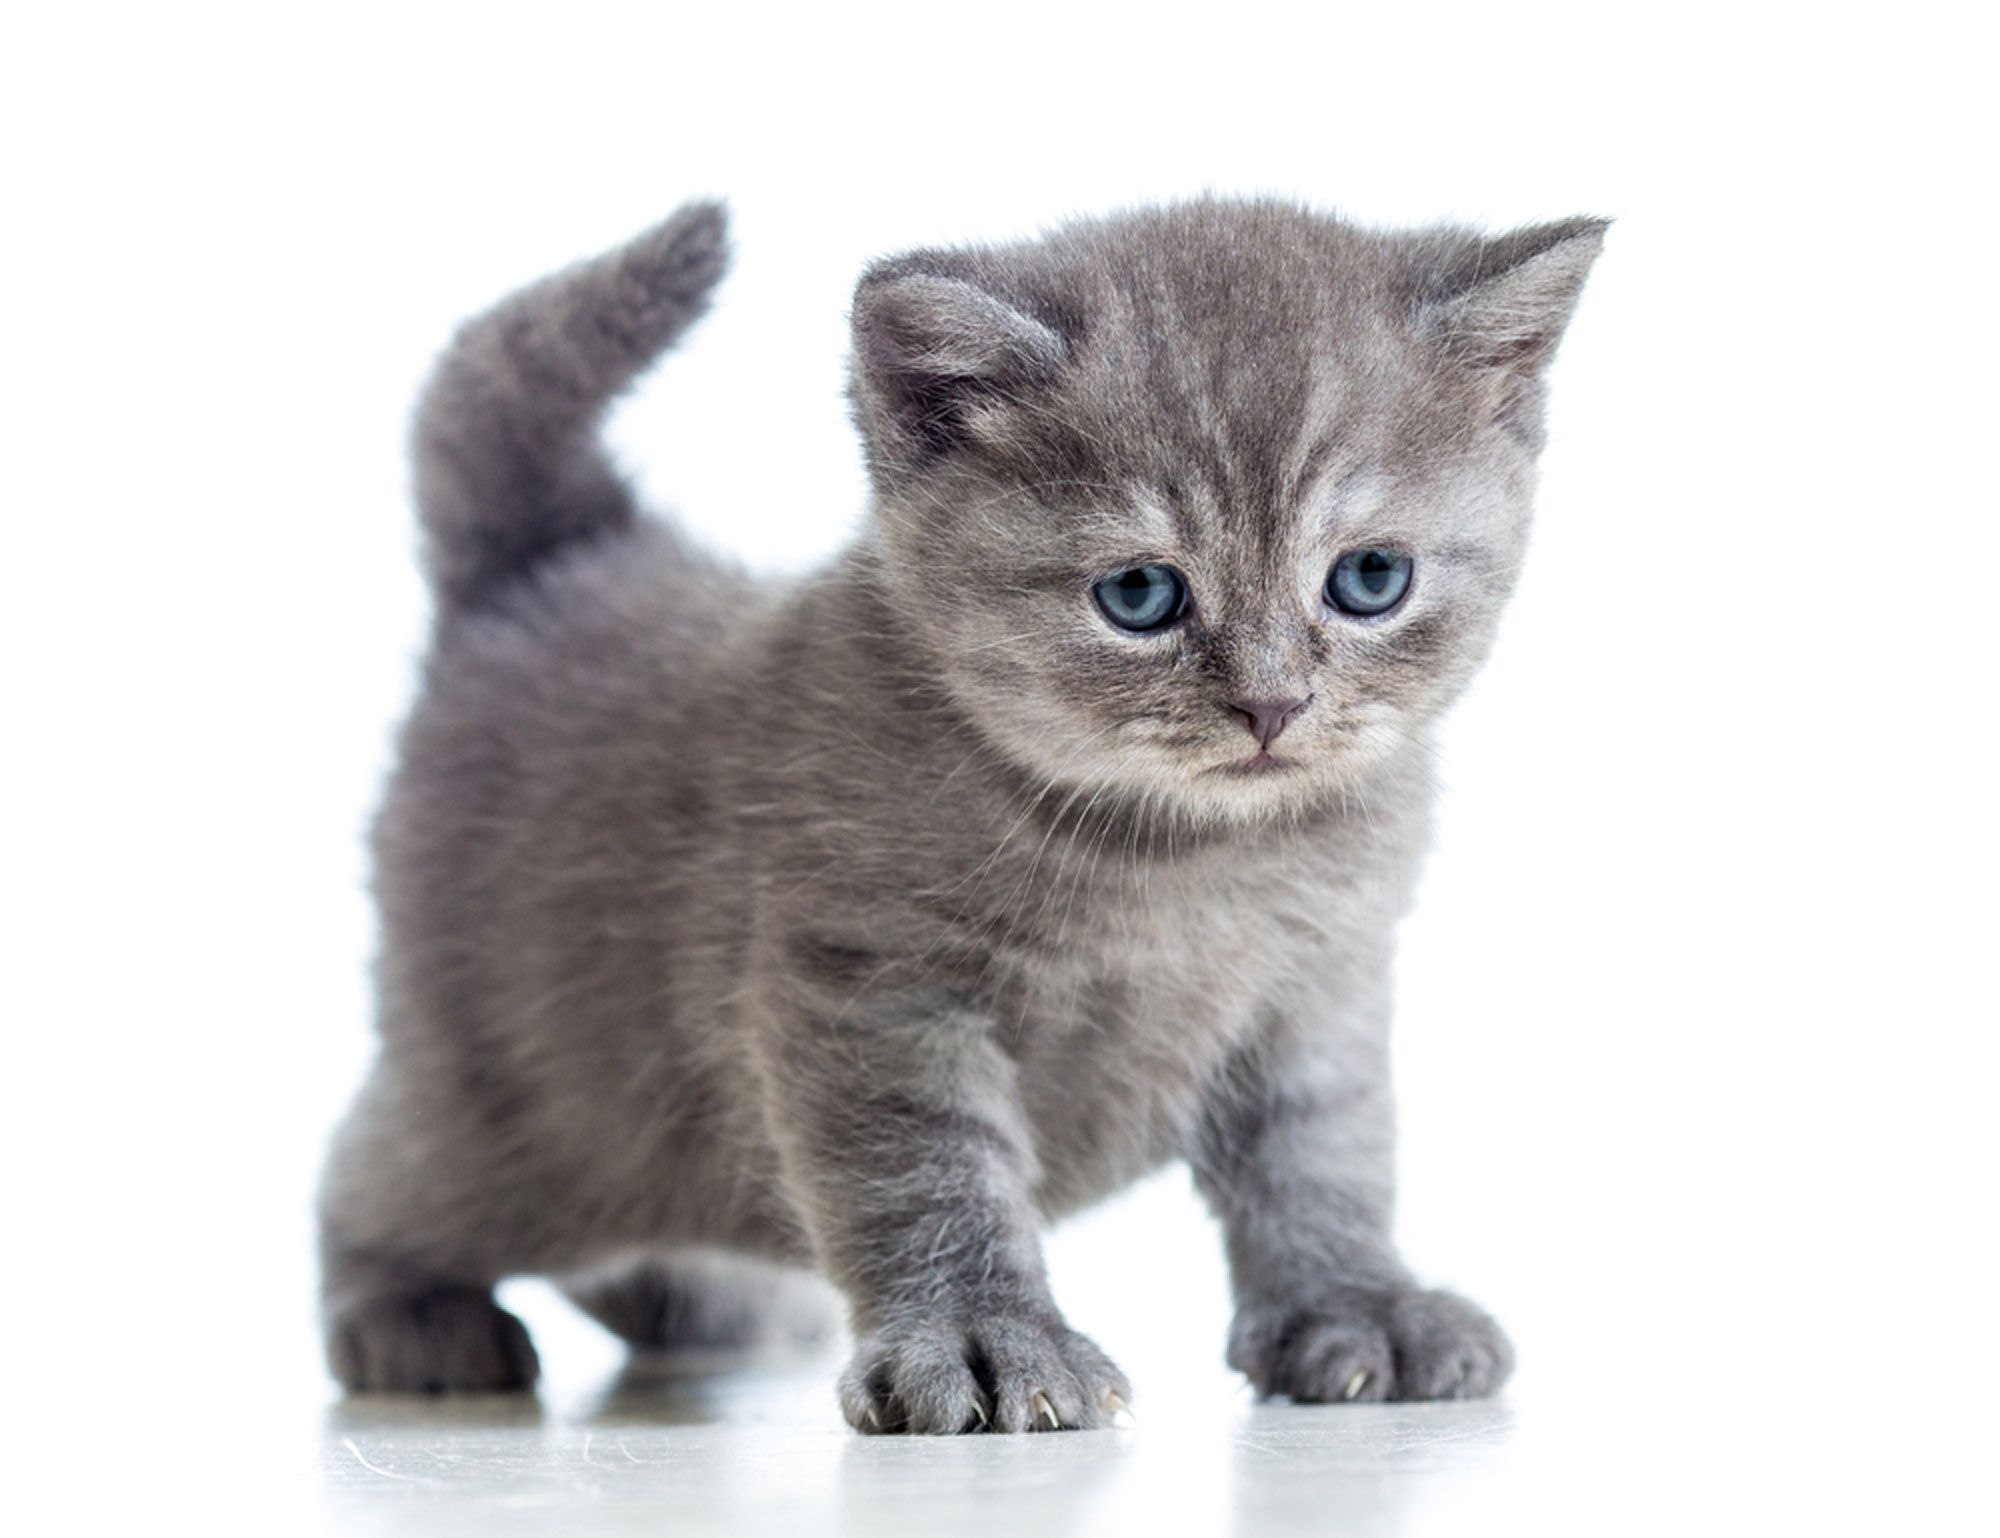 Photos And Videos Cute Cats And Dogs Cute Cats And Dogs Sick Kitten Gorgeous Cats